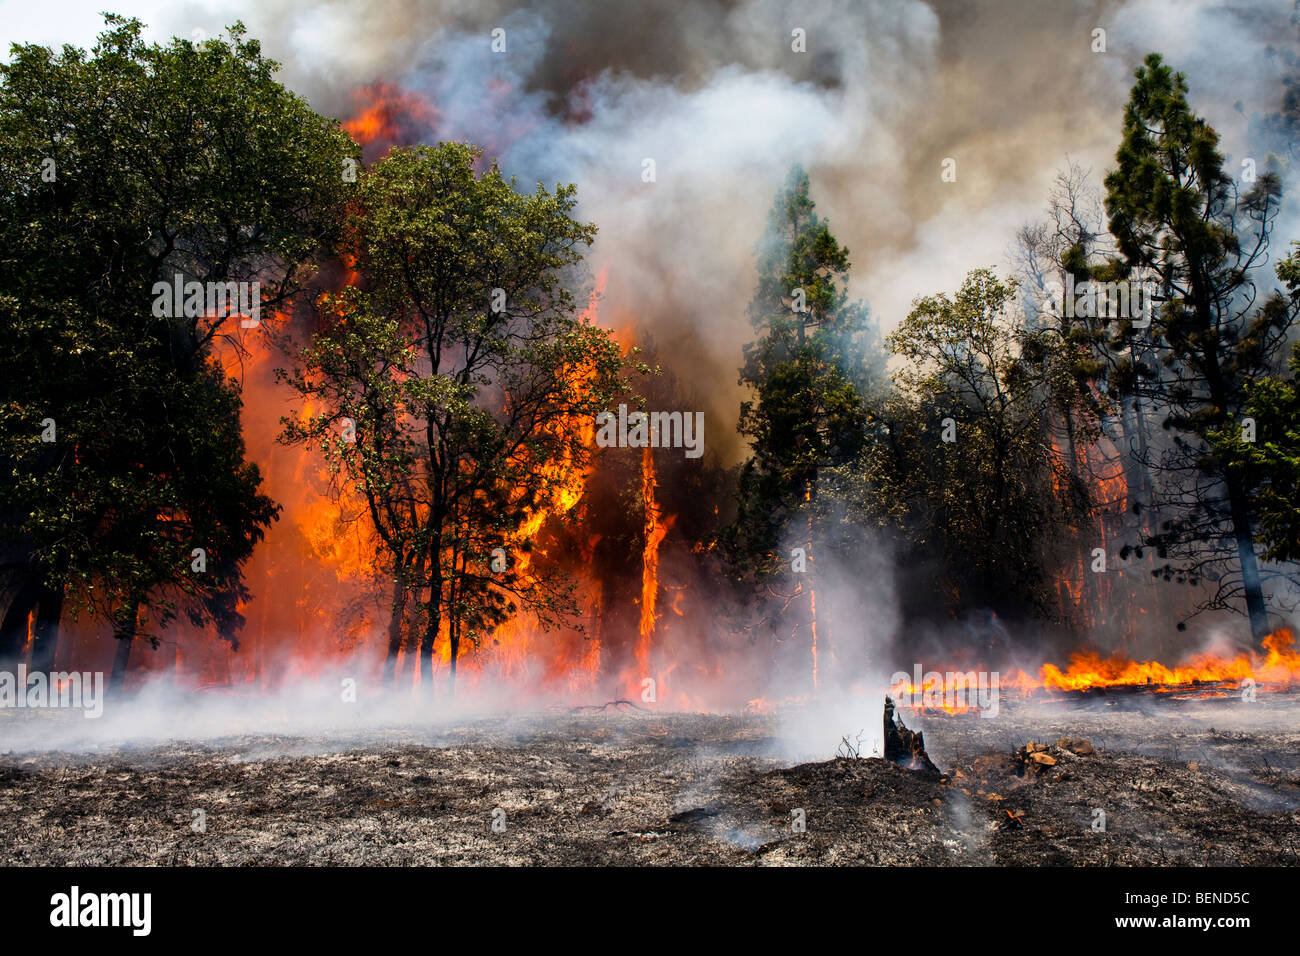 California Knight wildfire devastation in Stanislaus National Forest. CALFIRE / CDF - Stock Image